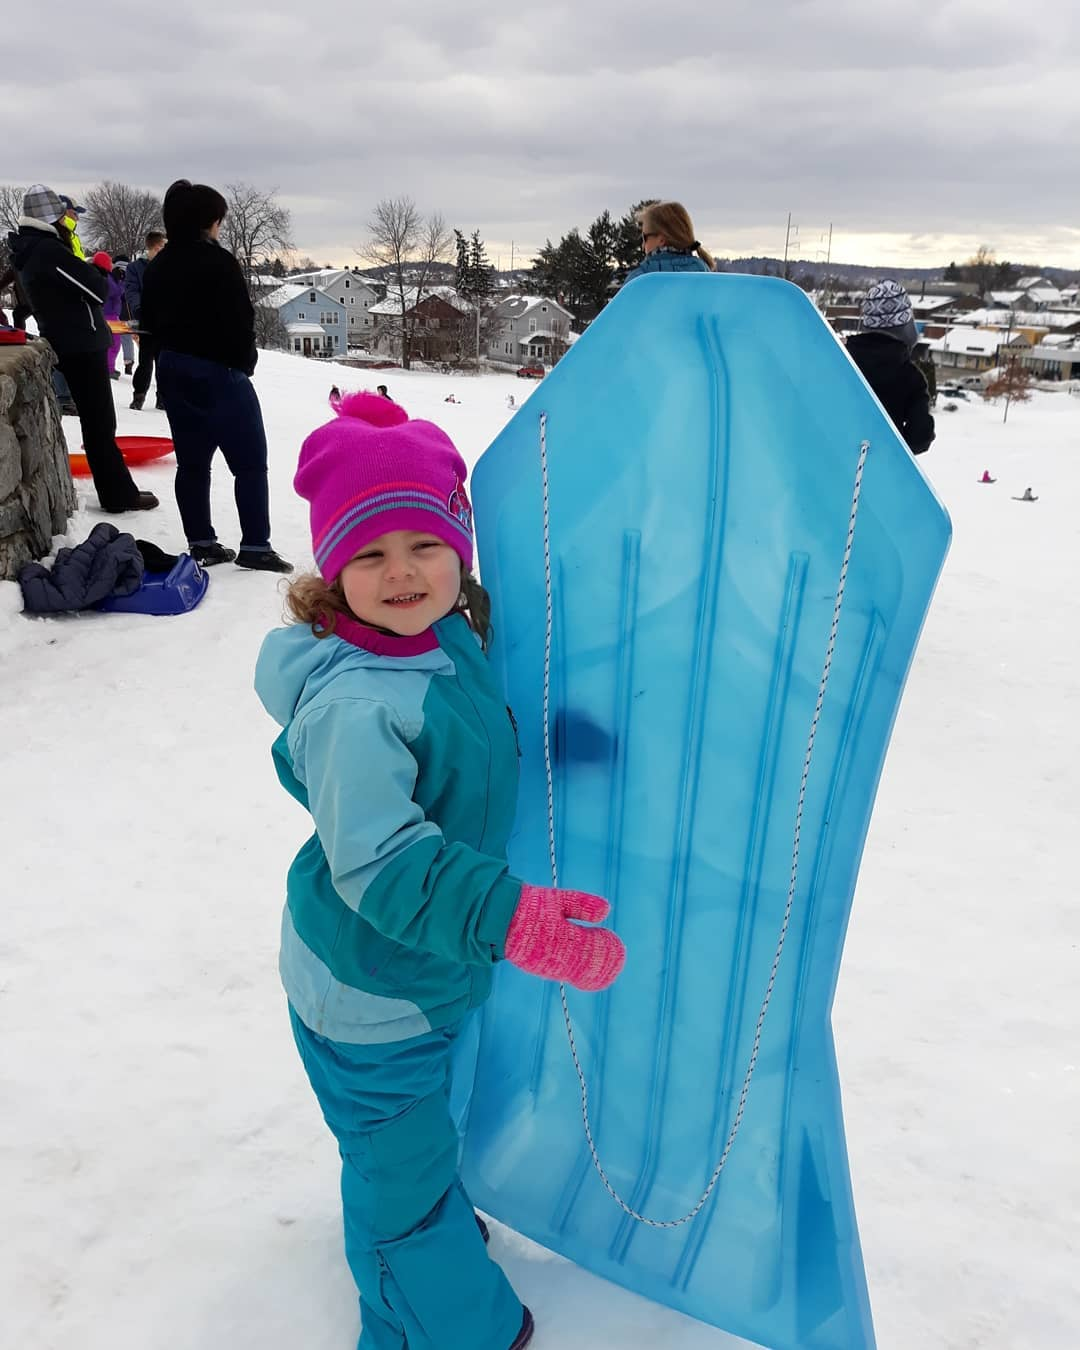 English+teacher+Jacqueline+Paton%27s+daughter+Samantha+Grace+enjoyed+her+first+sledding+day+of+the+2019+winter+season.